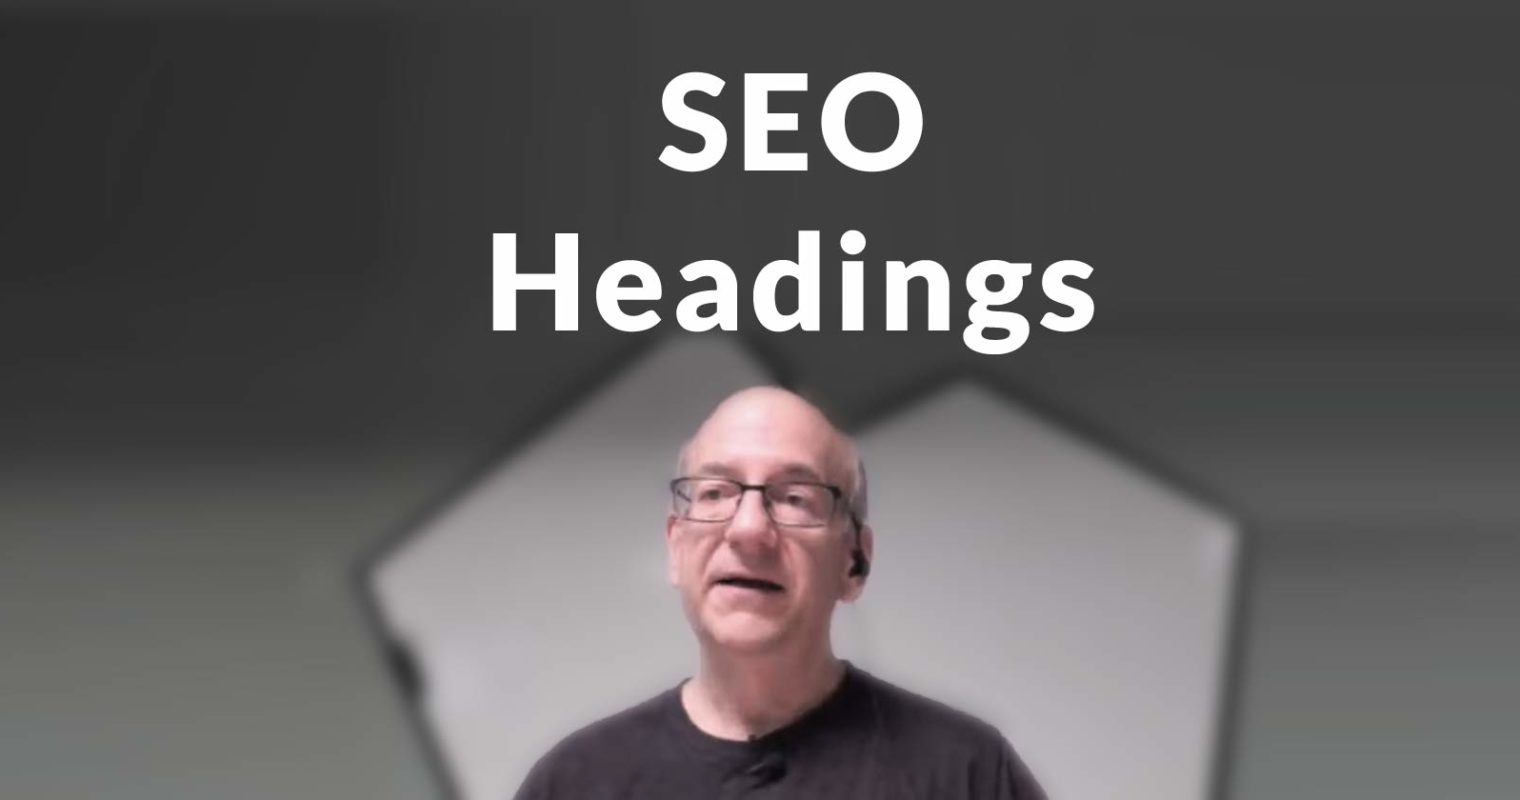 Google Explains How to Use Headings for SEO